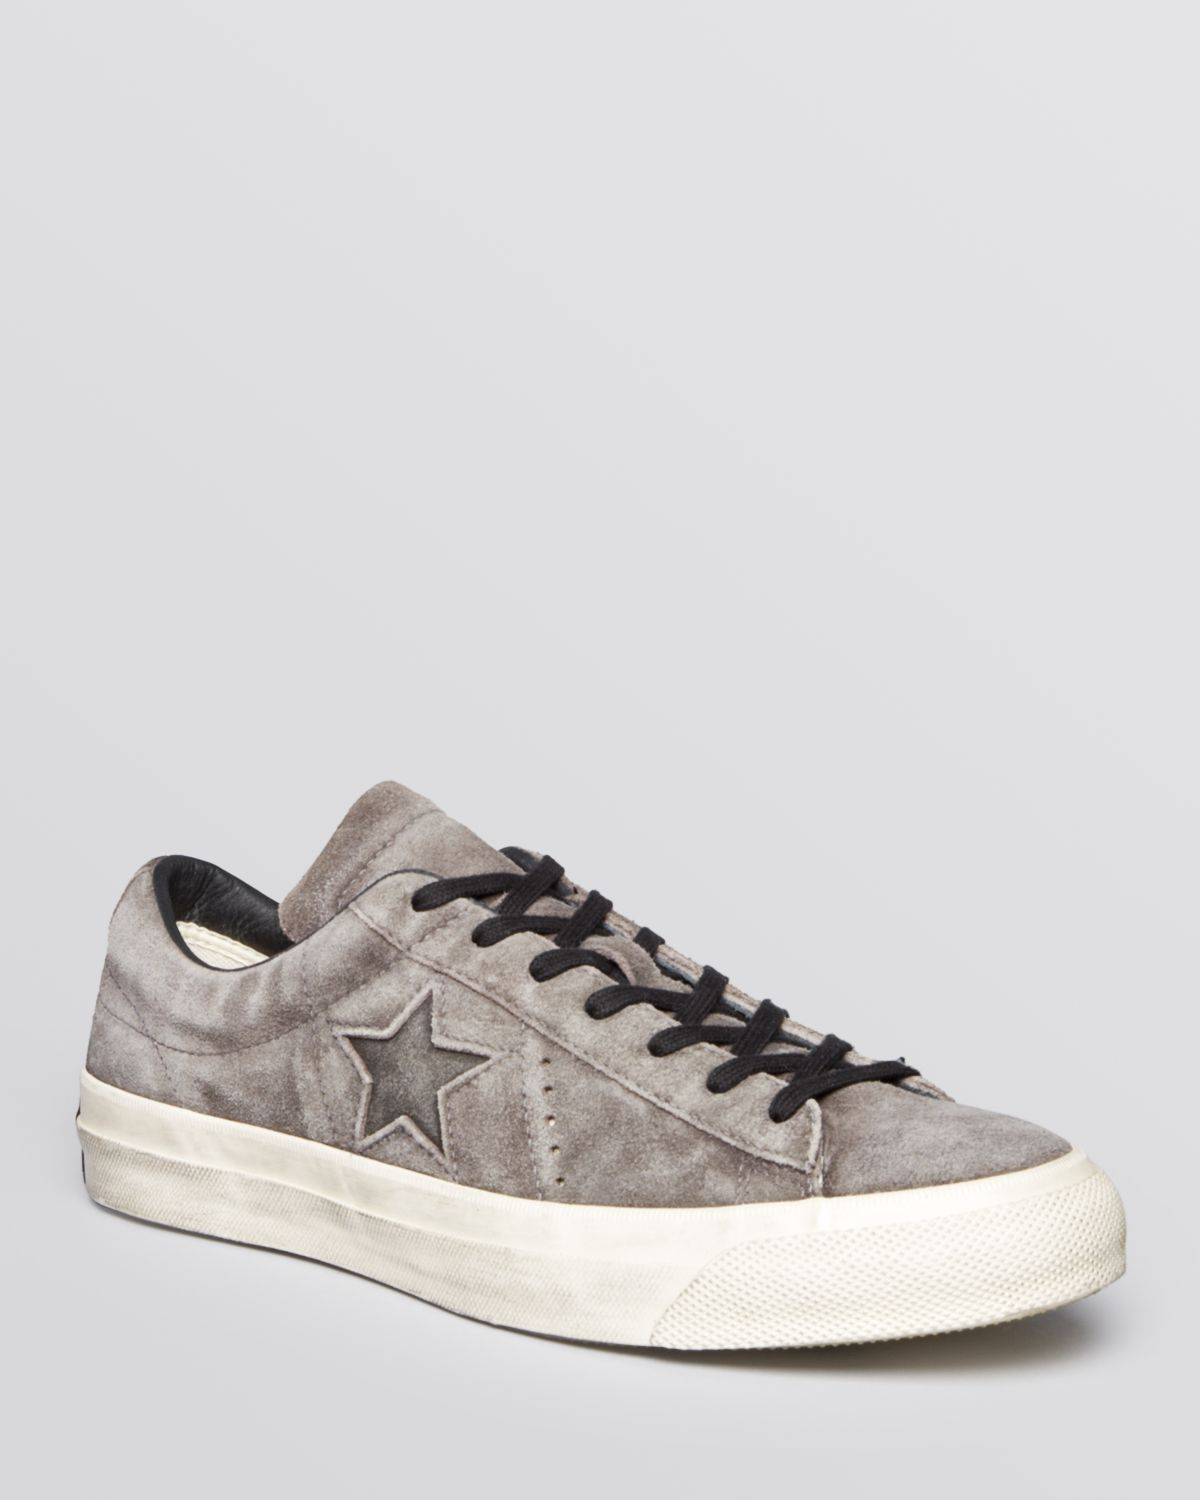 ac88301aefbc91 best price distressed suede sneakers c0907 4e909  sweden gallery.  previously sold at bloomingdales mens john varvatos converse 8f274 1237e